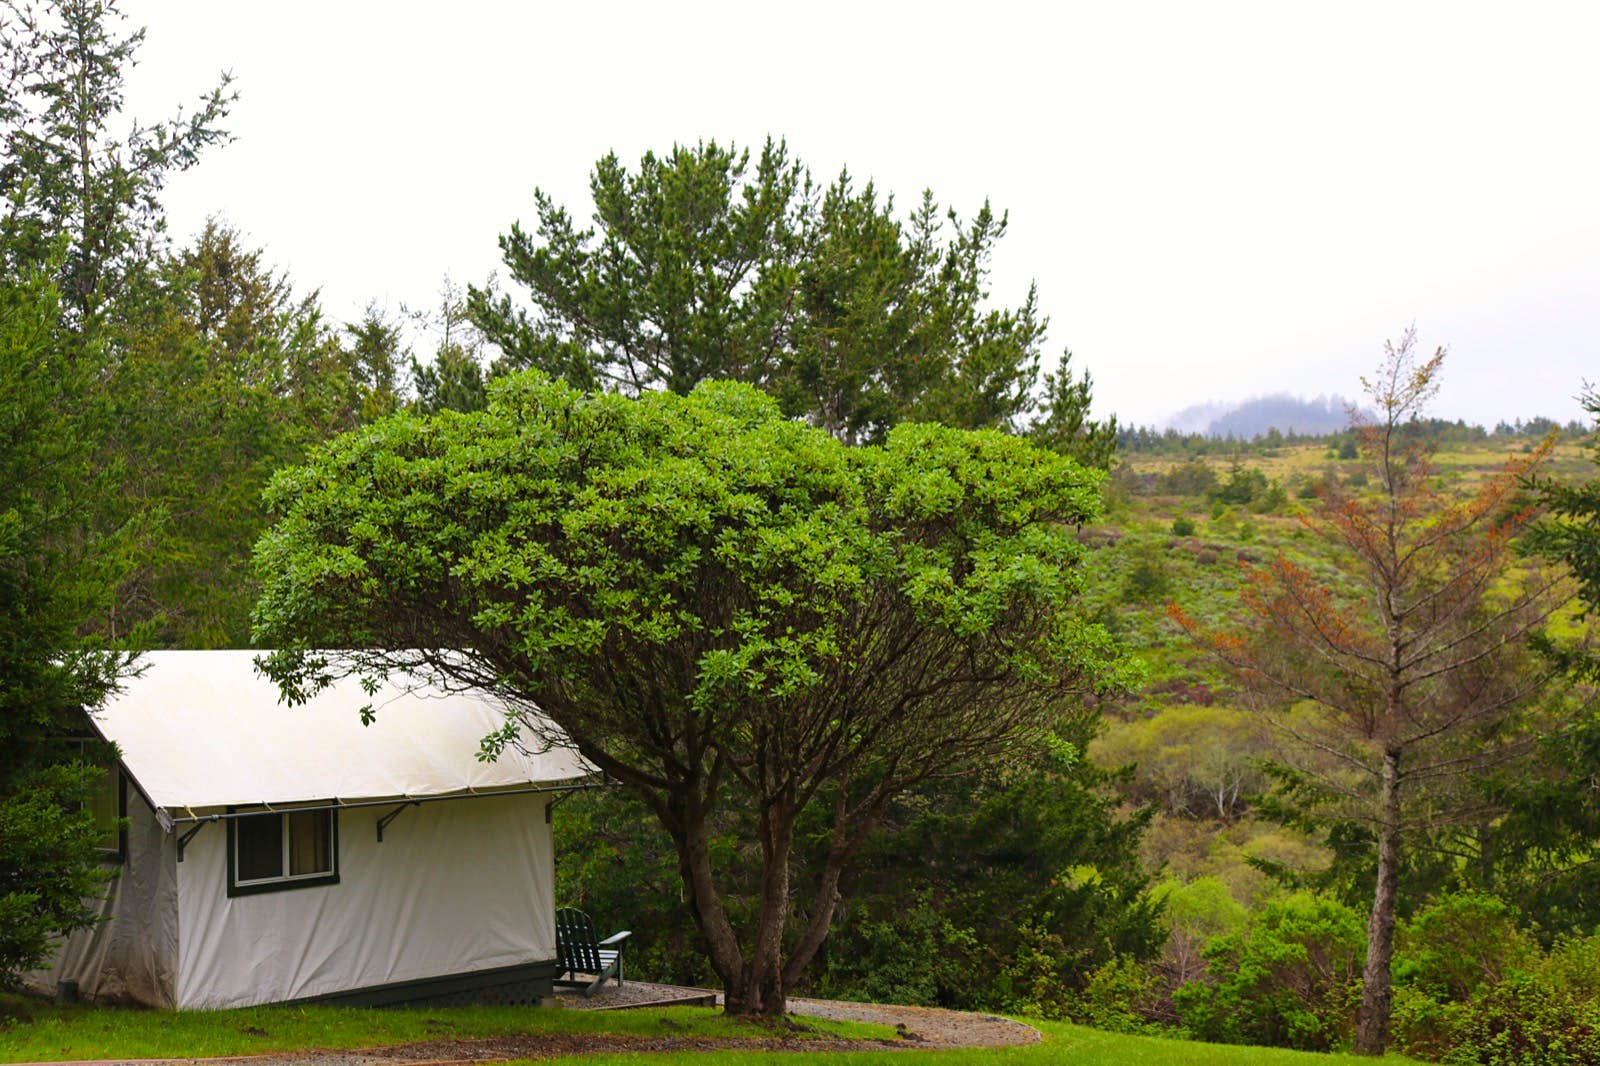 A white tent overlooks a verdant valley next to a large leafy tree